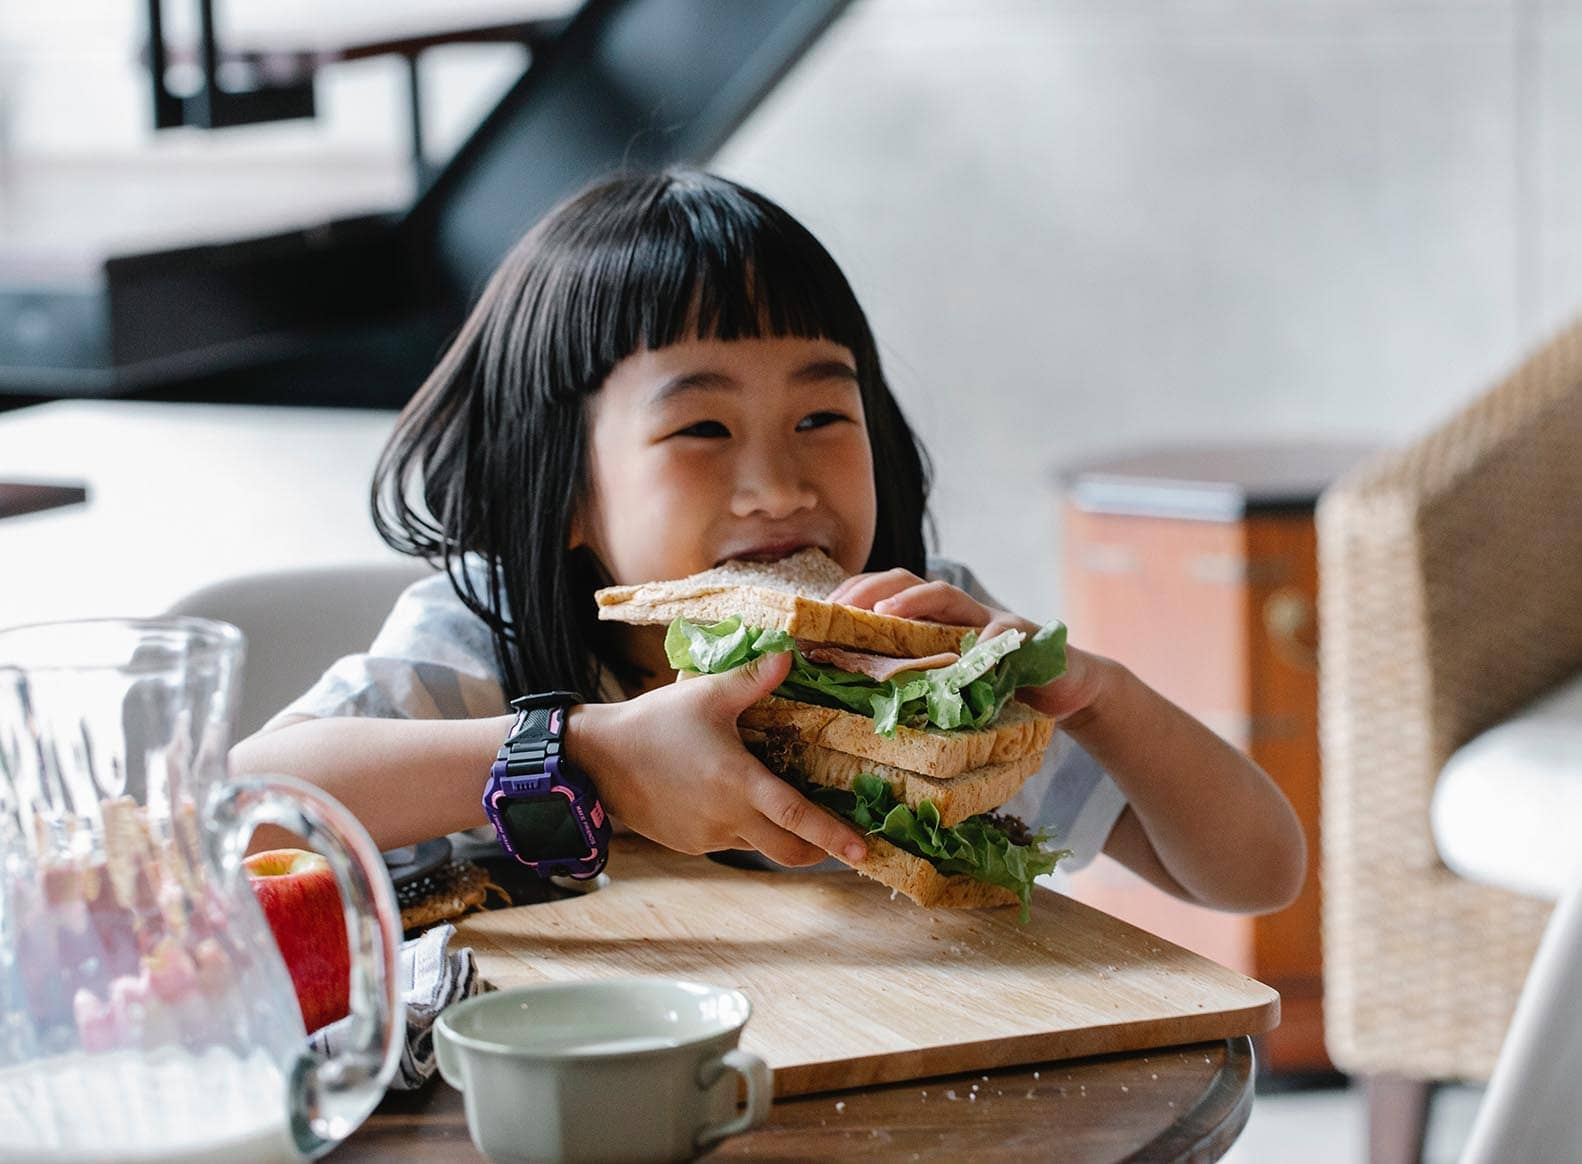 child eating sandwich 'hangry'